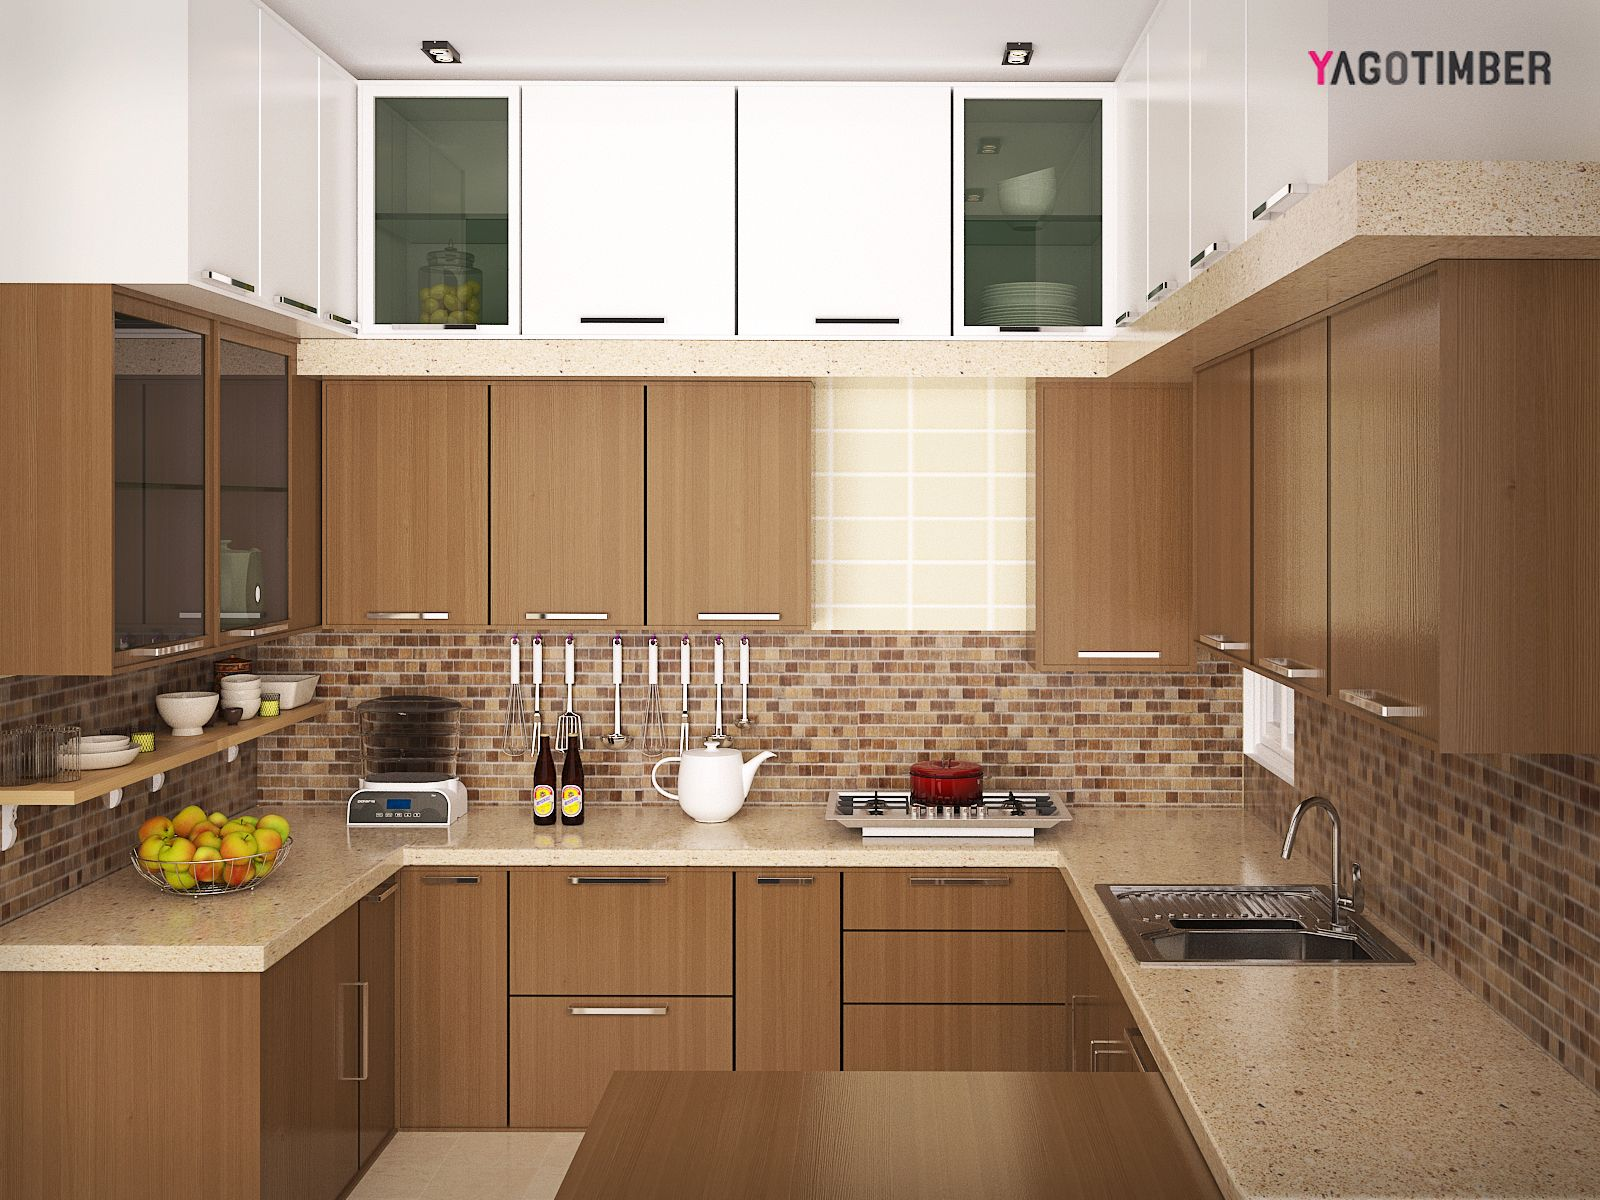 Yagotimber.com Is Presenting Latest #LShaped And #UShaped Modular Kitchen  Designs For Your #home. Yagotimber.com Is Presenting Latest #LShaped And # UShaped ...